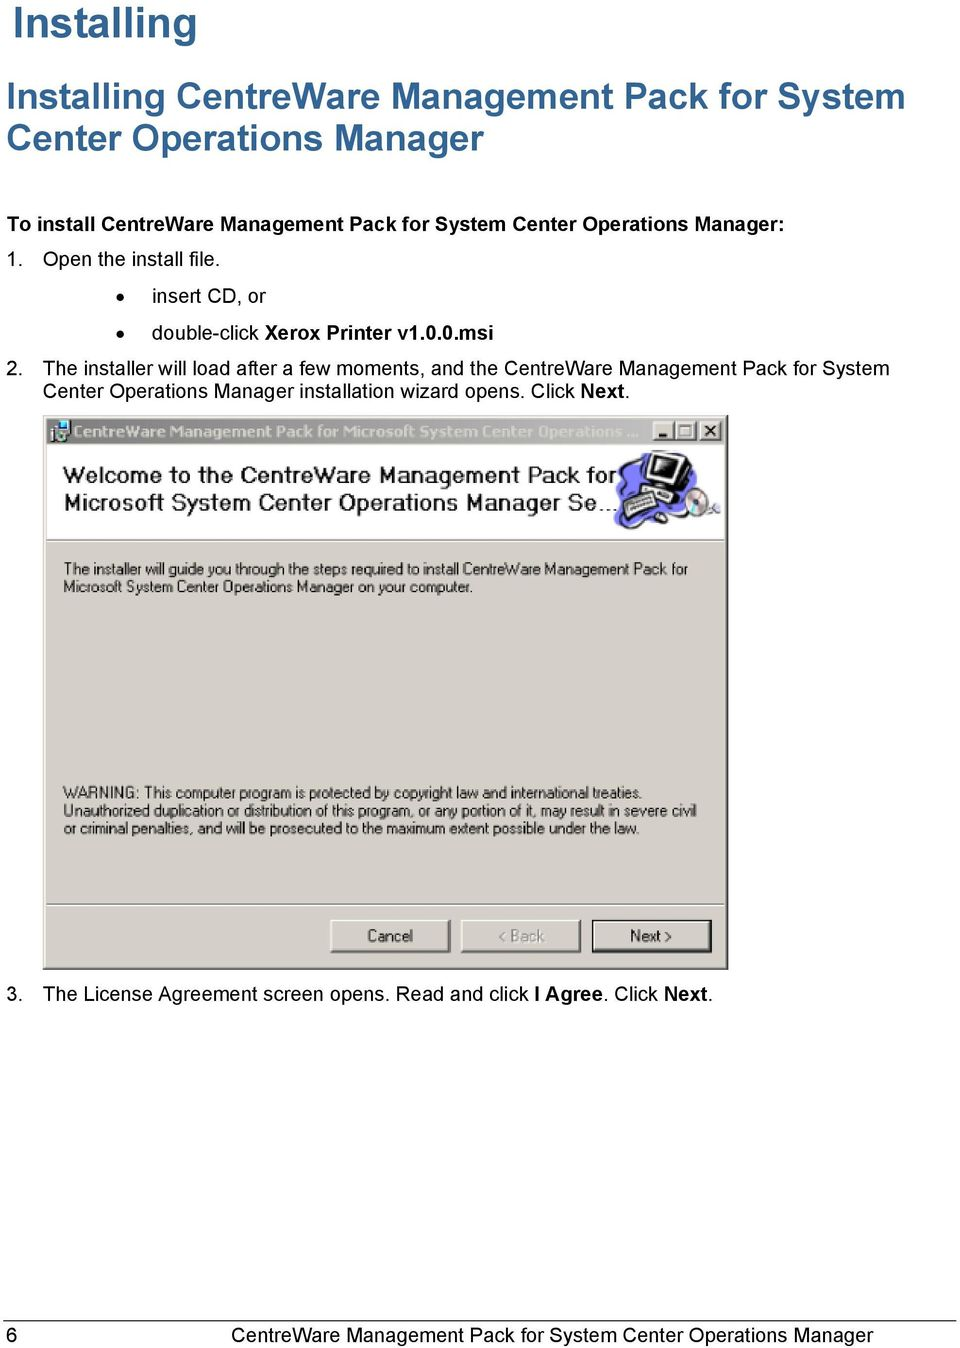 The installer will load after a few moments, and the CentreWare Management Pack for System Center Operations Manager installation